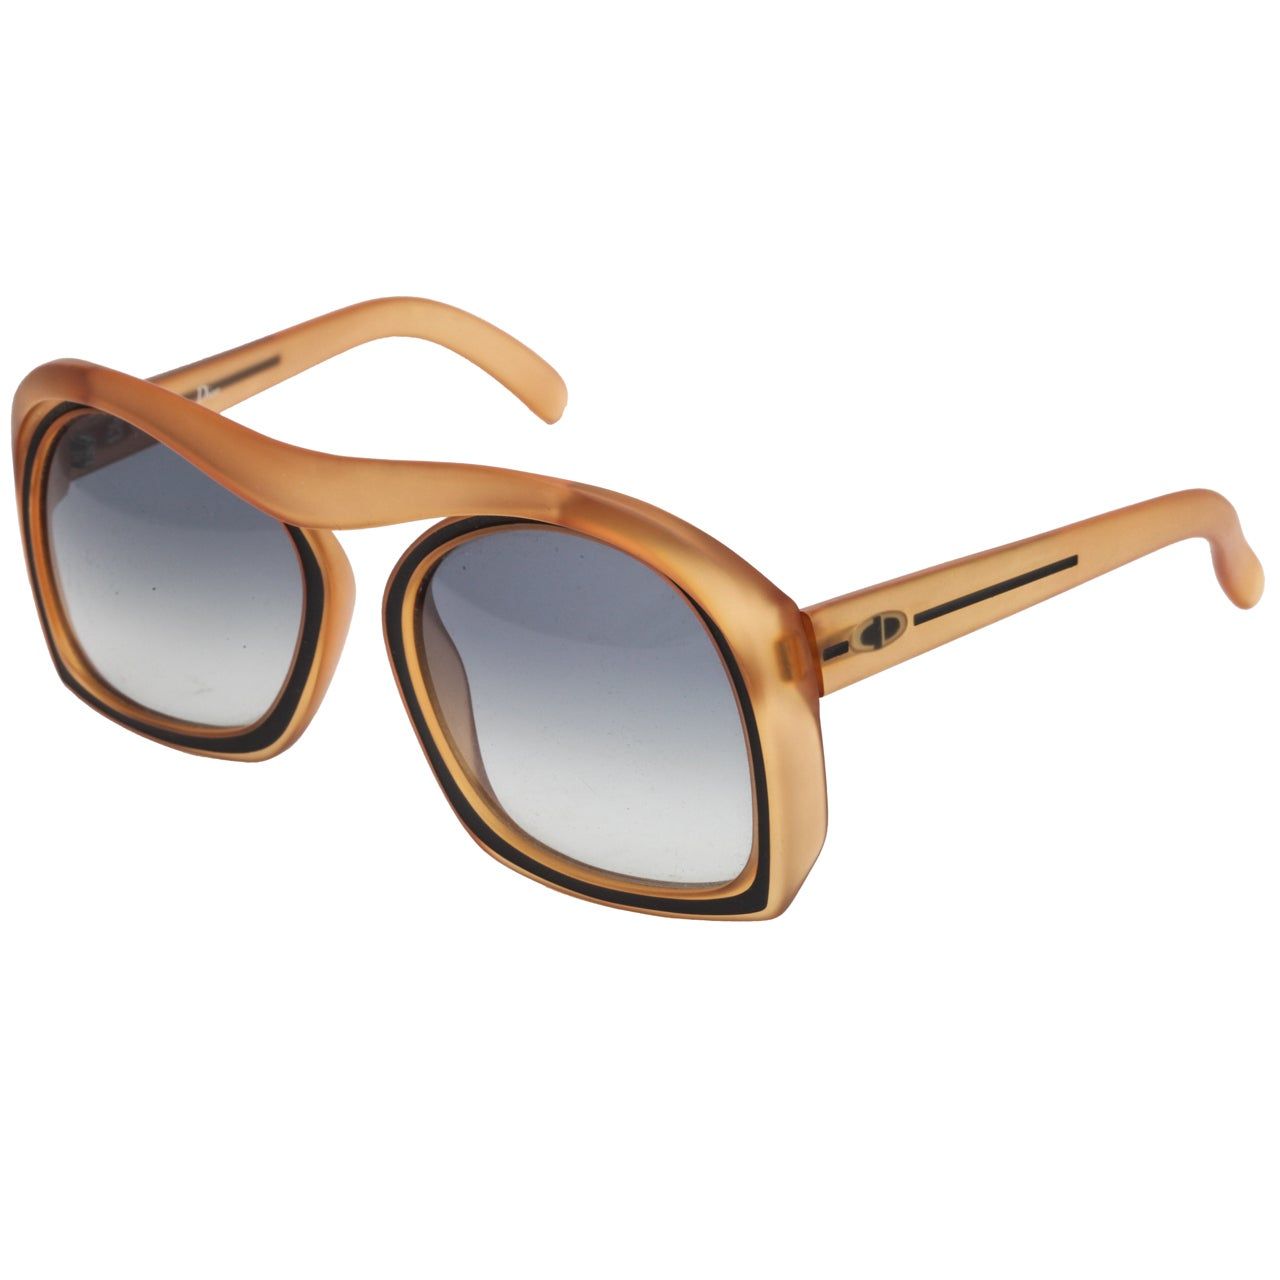 Fashion Accessories Sunglasses Vintage Christian Dior Sunglasses 2043 80 Id V 104753 Cheap Dior Sunglasses